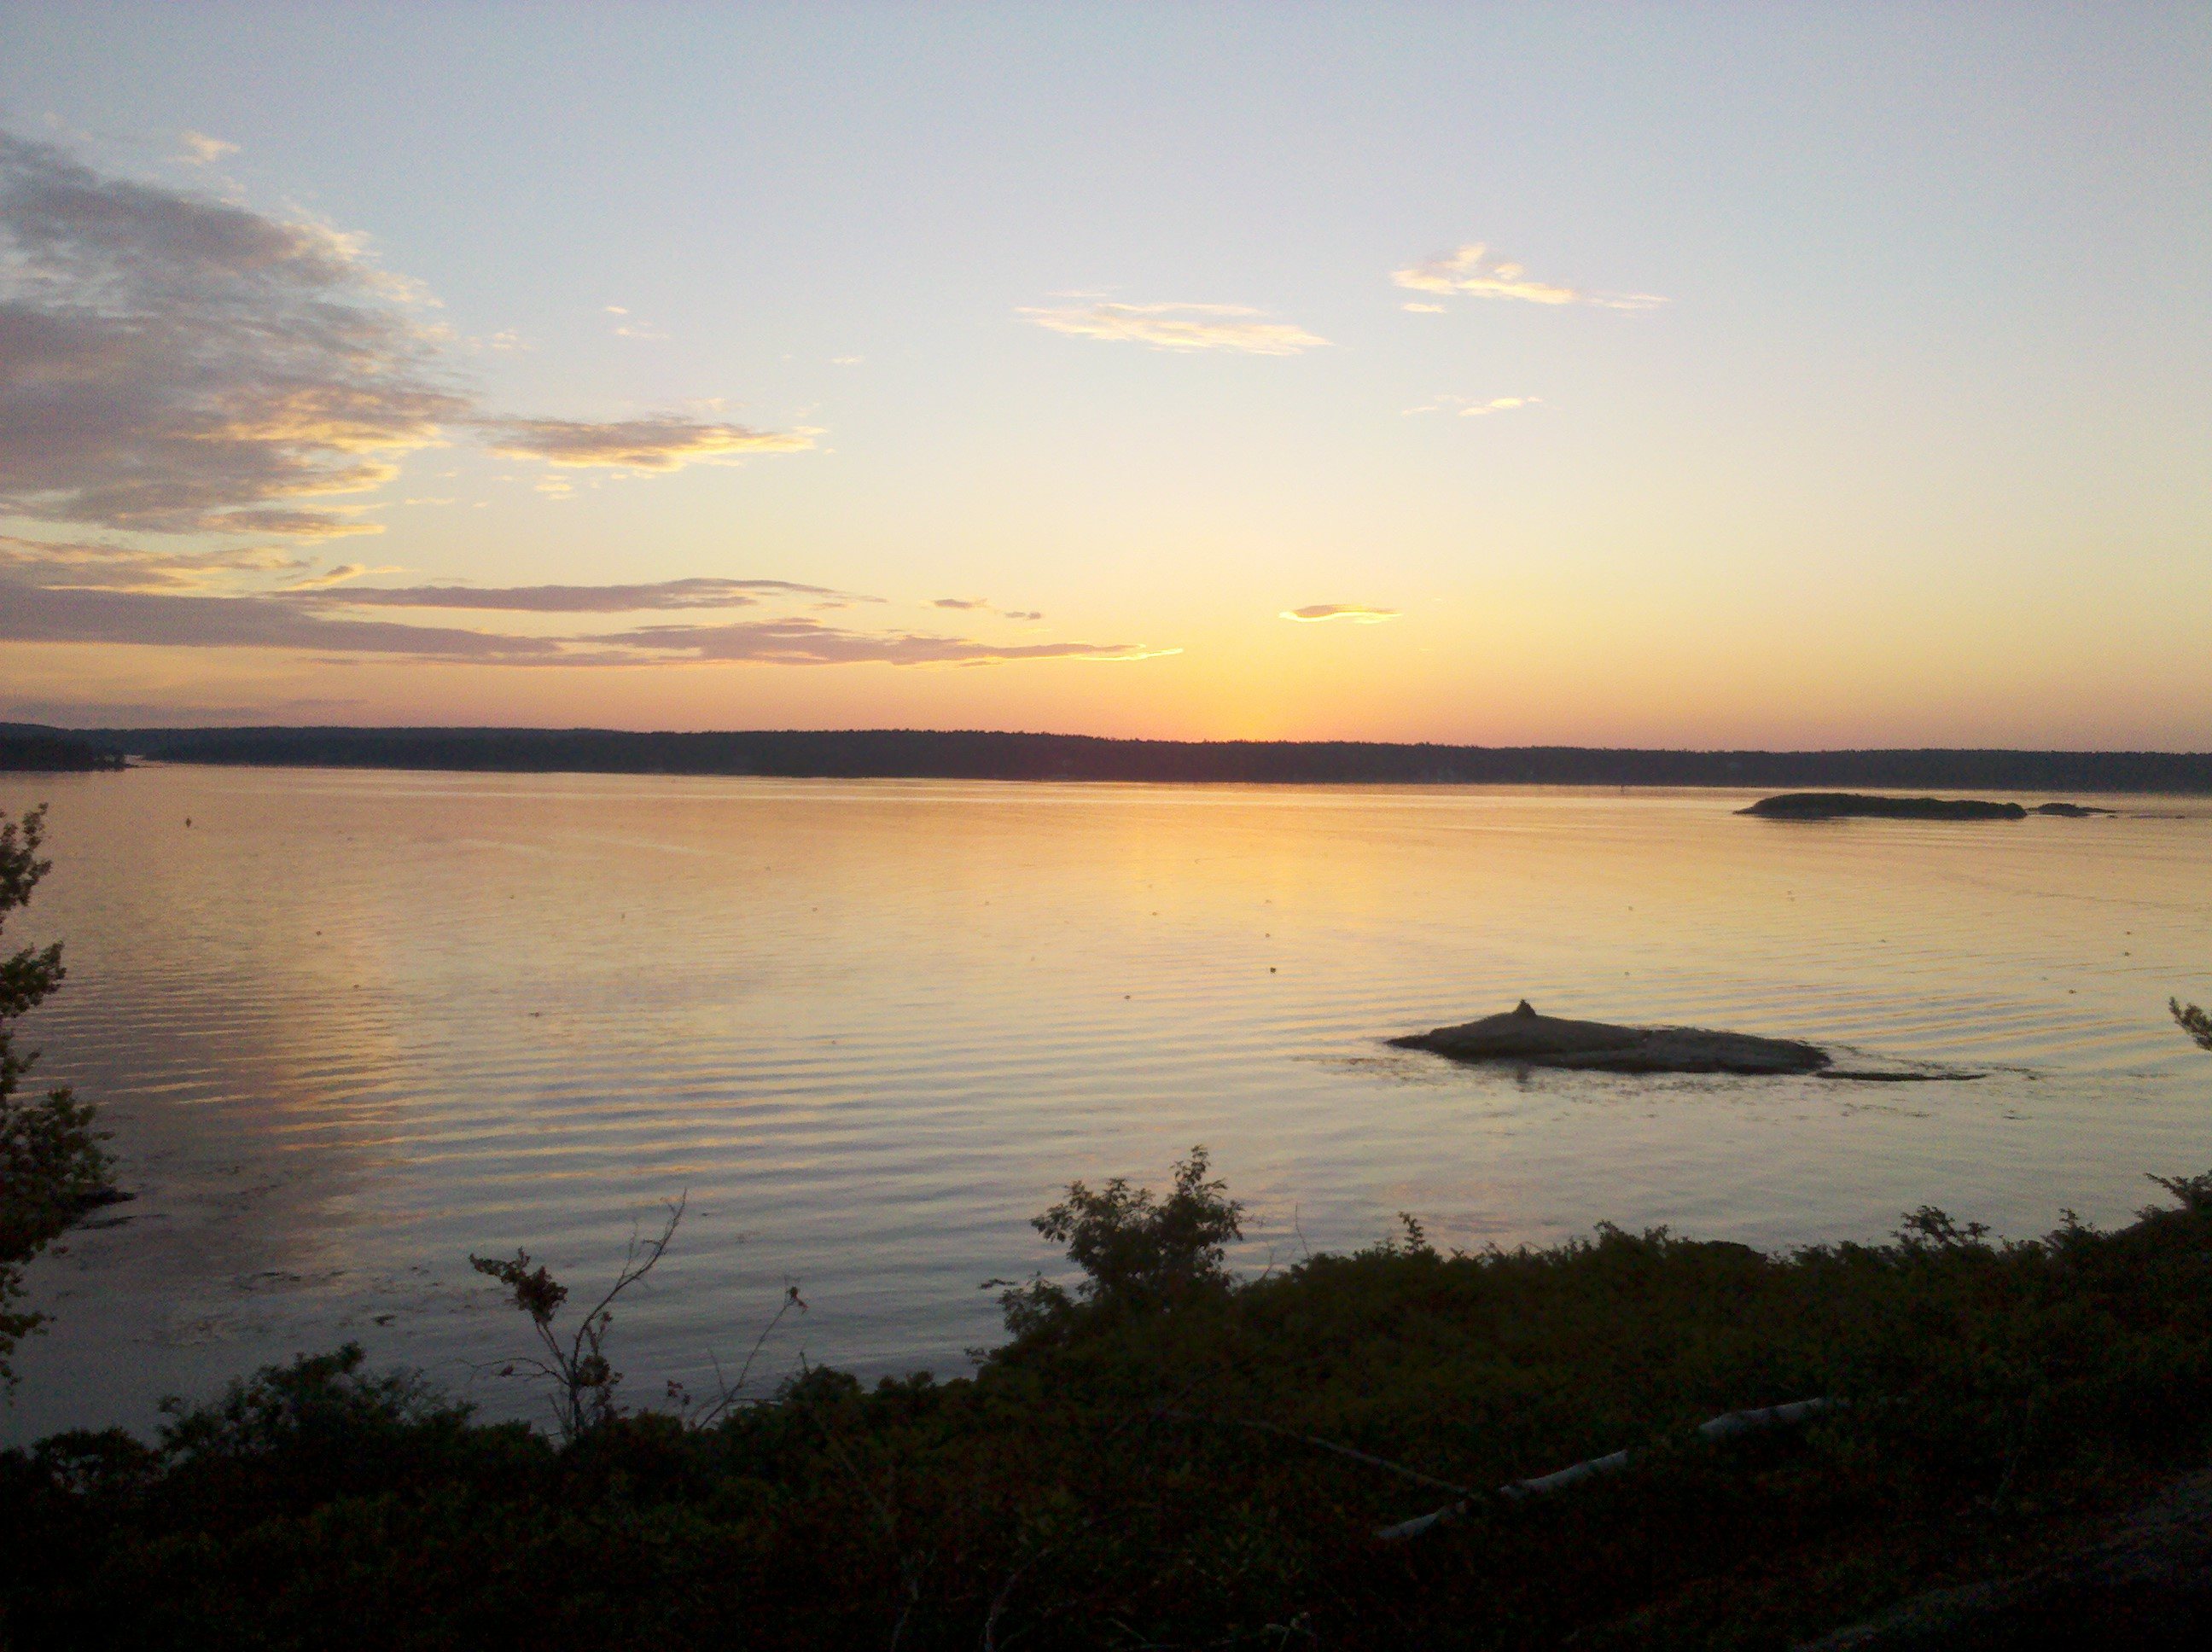 Sunset over the Sheepscot River